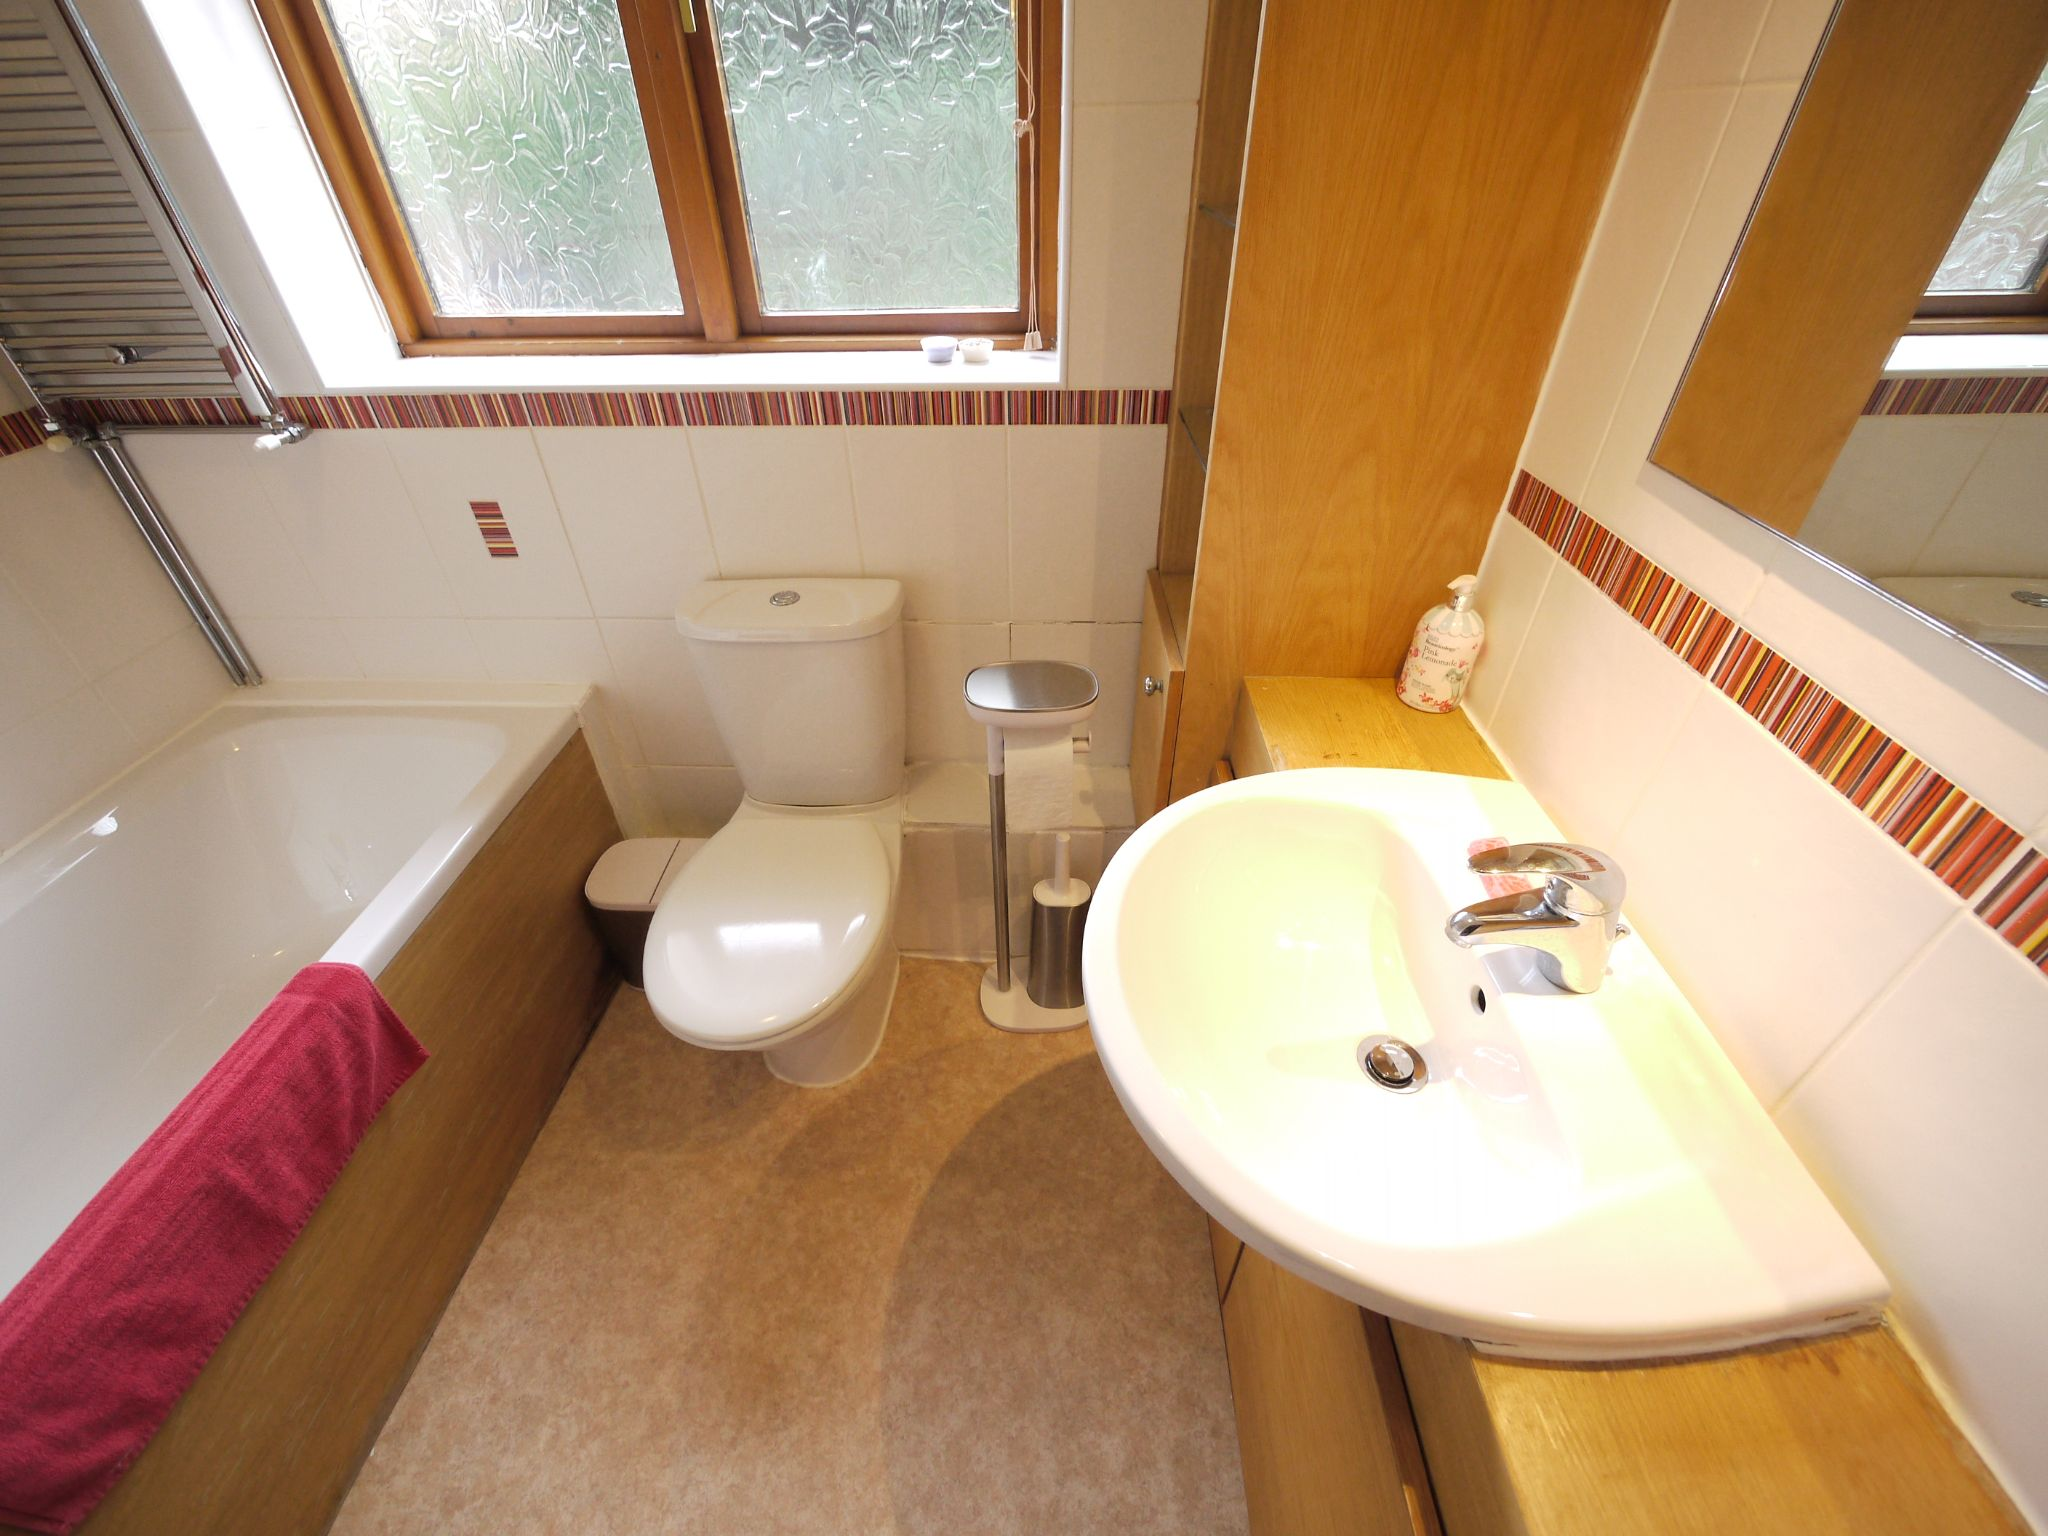 4 bedroom detached house SSTC in Brighouse - Bathroom 1.